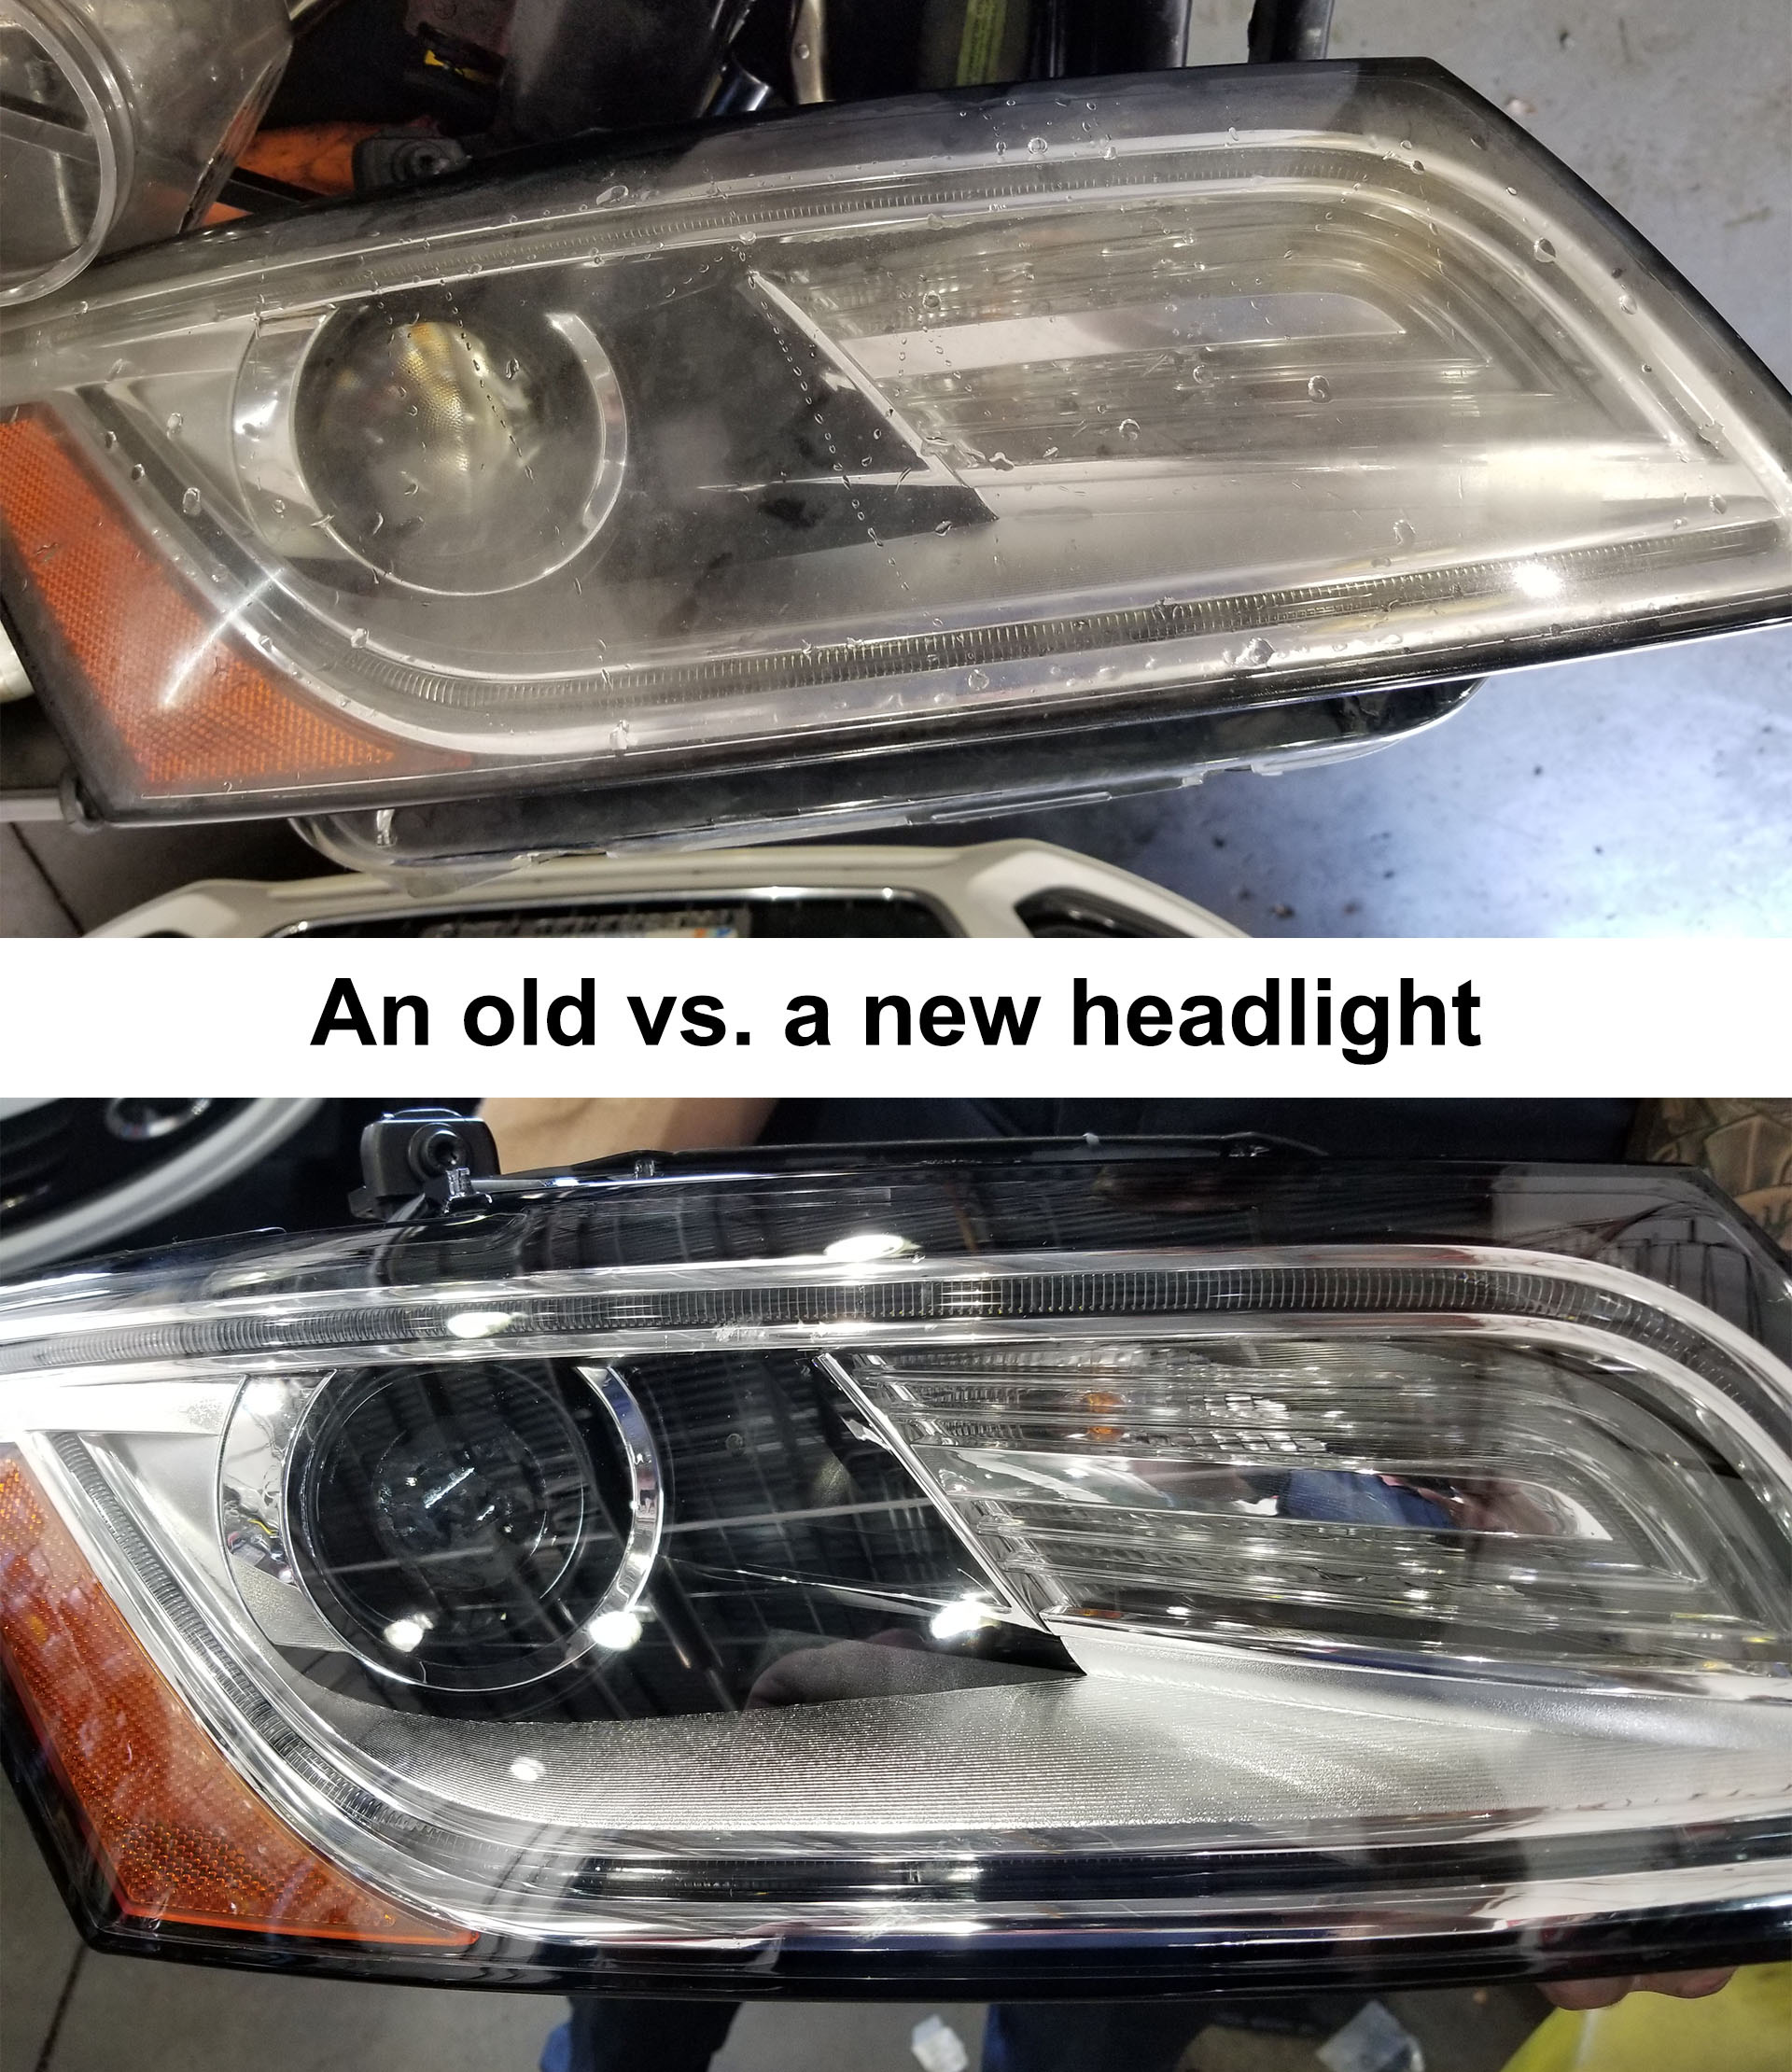 Headlights and your car's state inspection